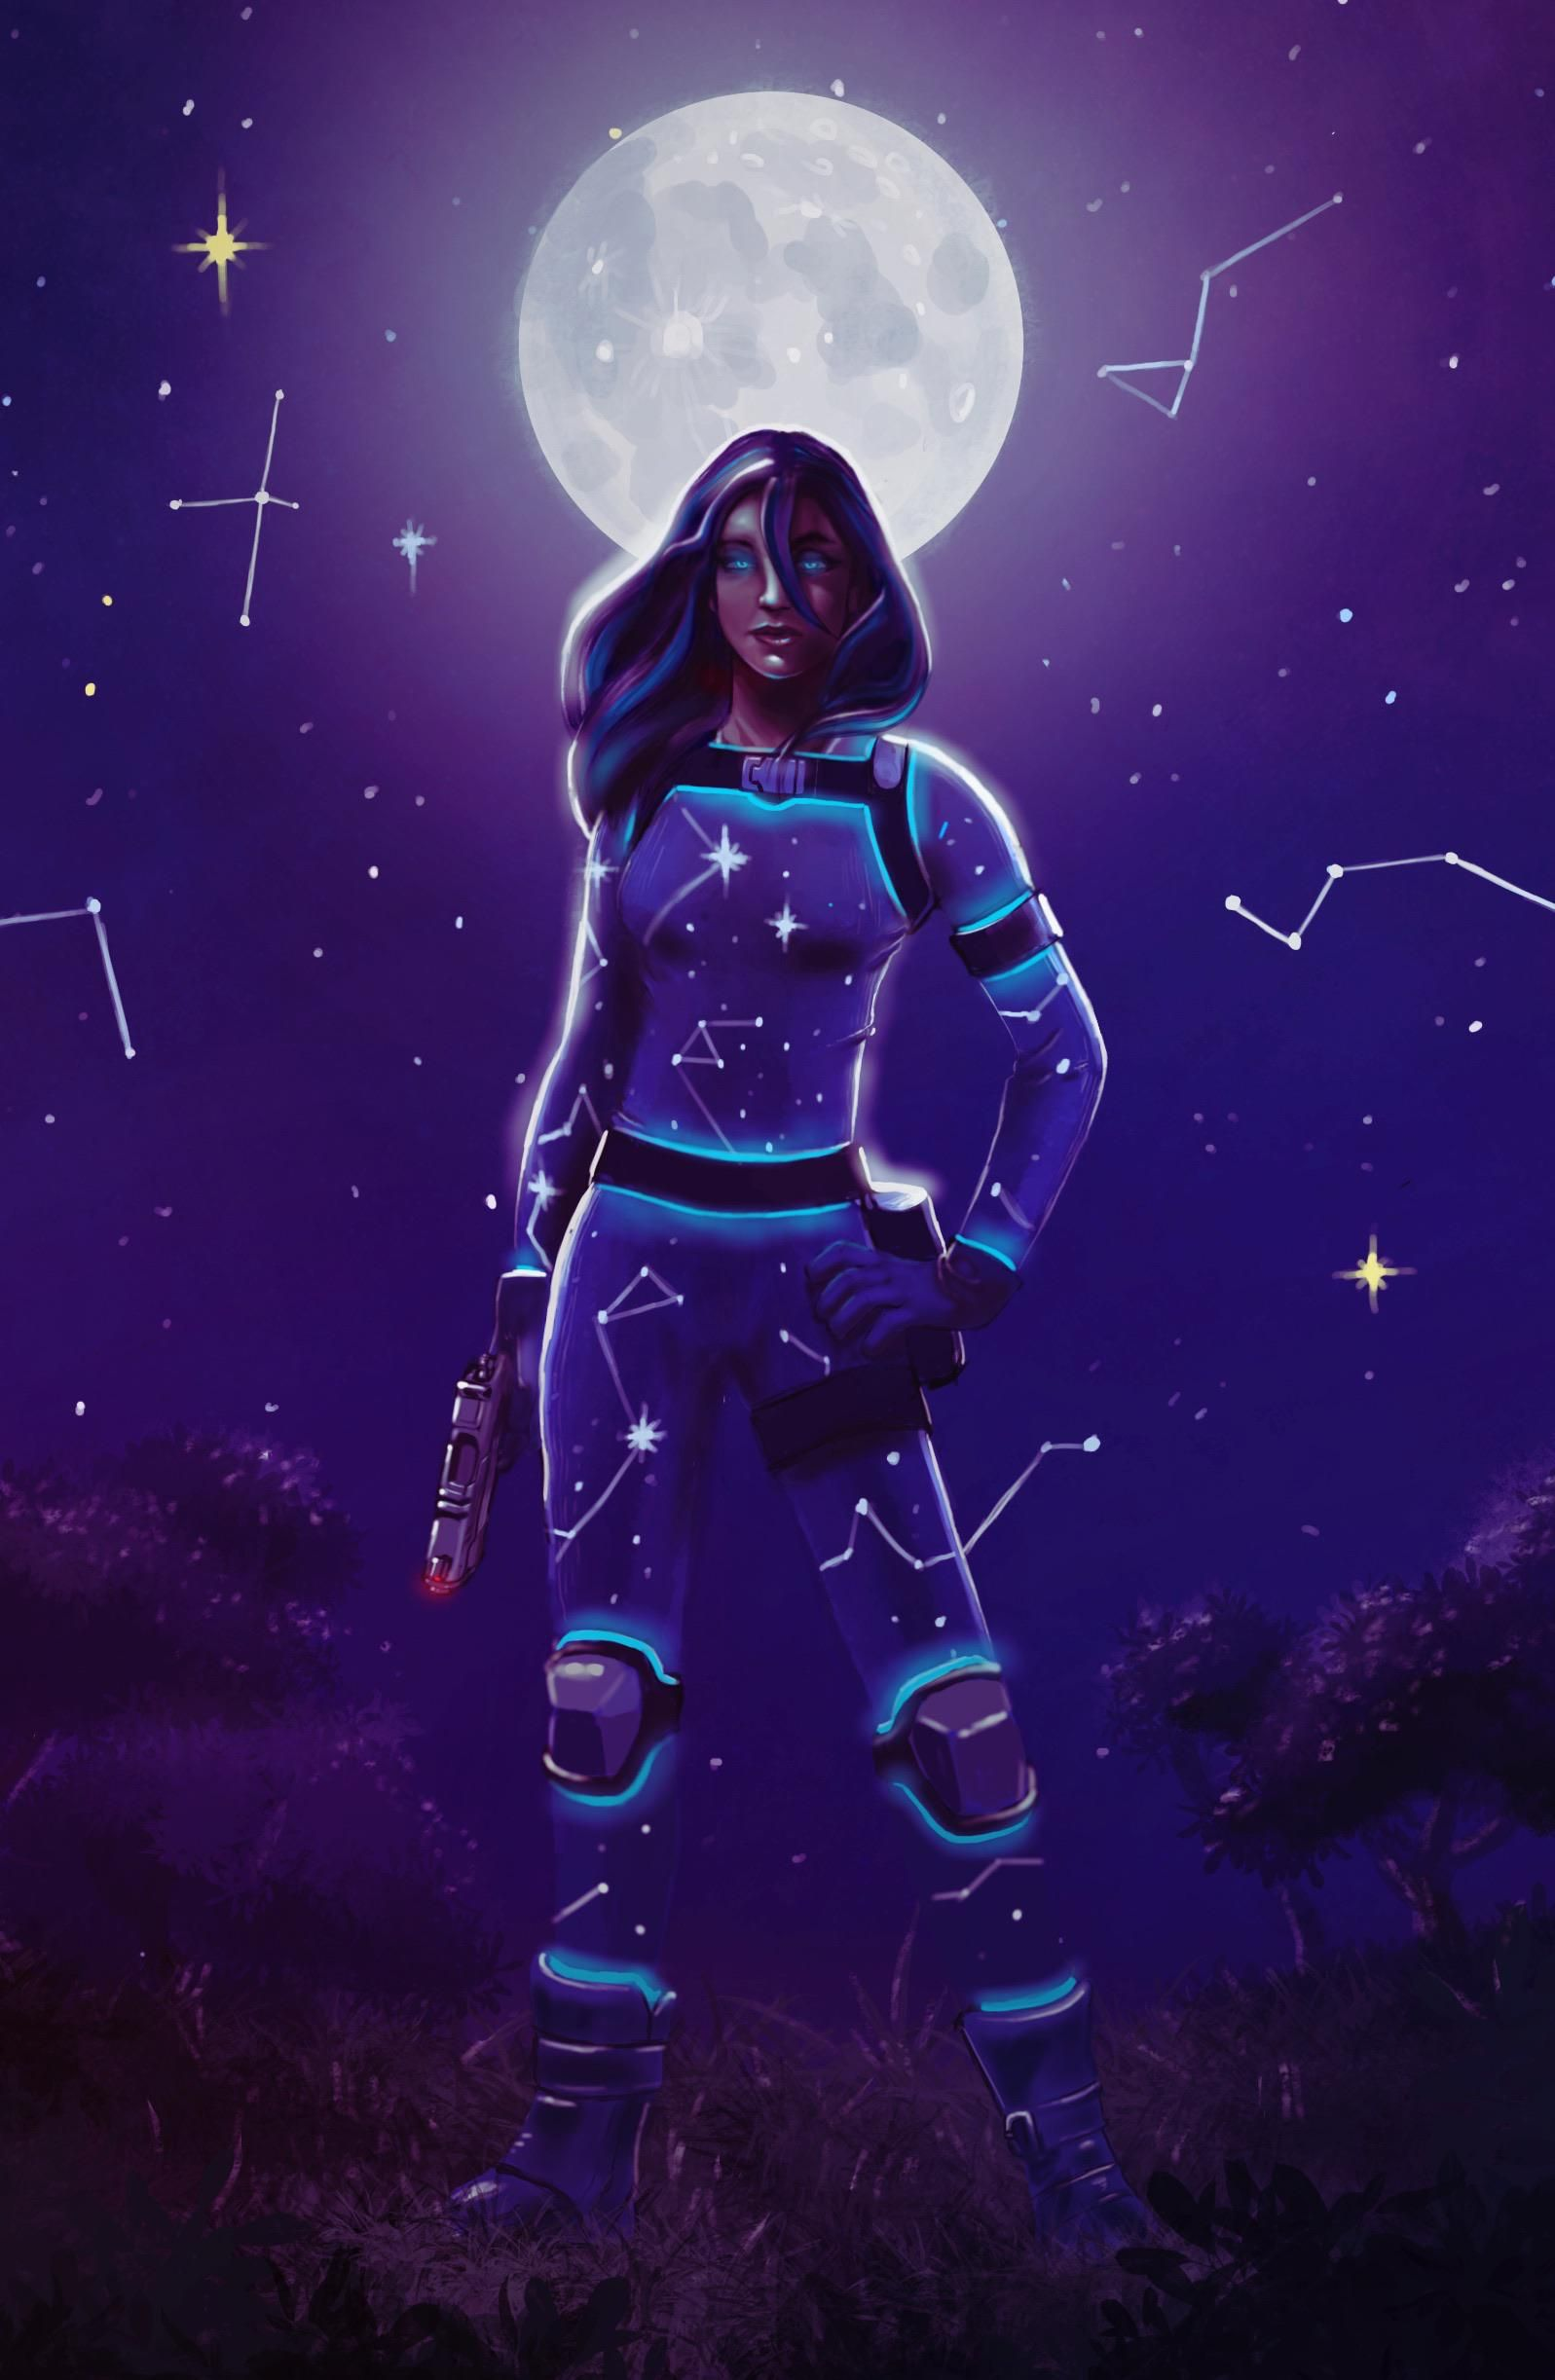 Fortnite Art Fanart In 2020 Art Fan Art Character Design Unleash your creativity with one of the most popular apps with over 1 billion downloads to date. pinterest